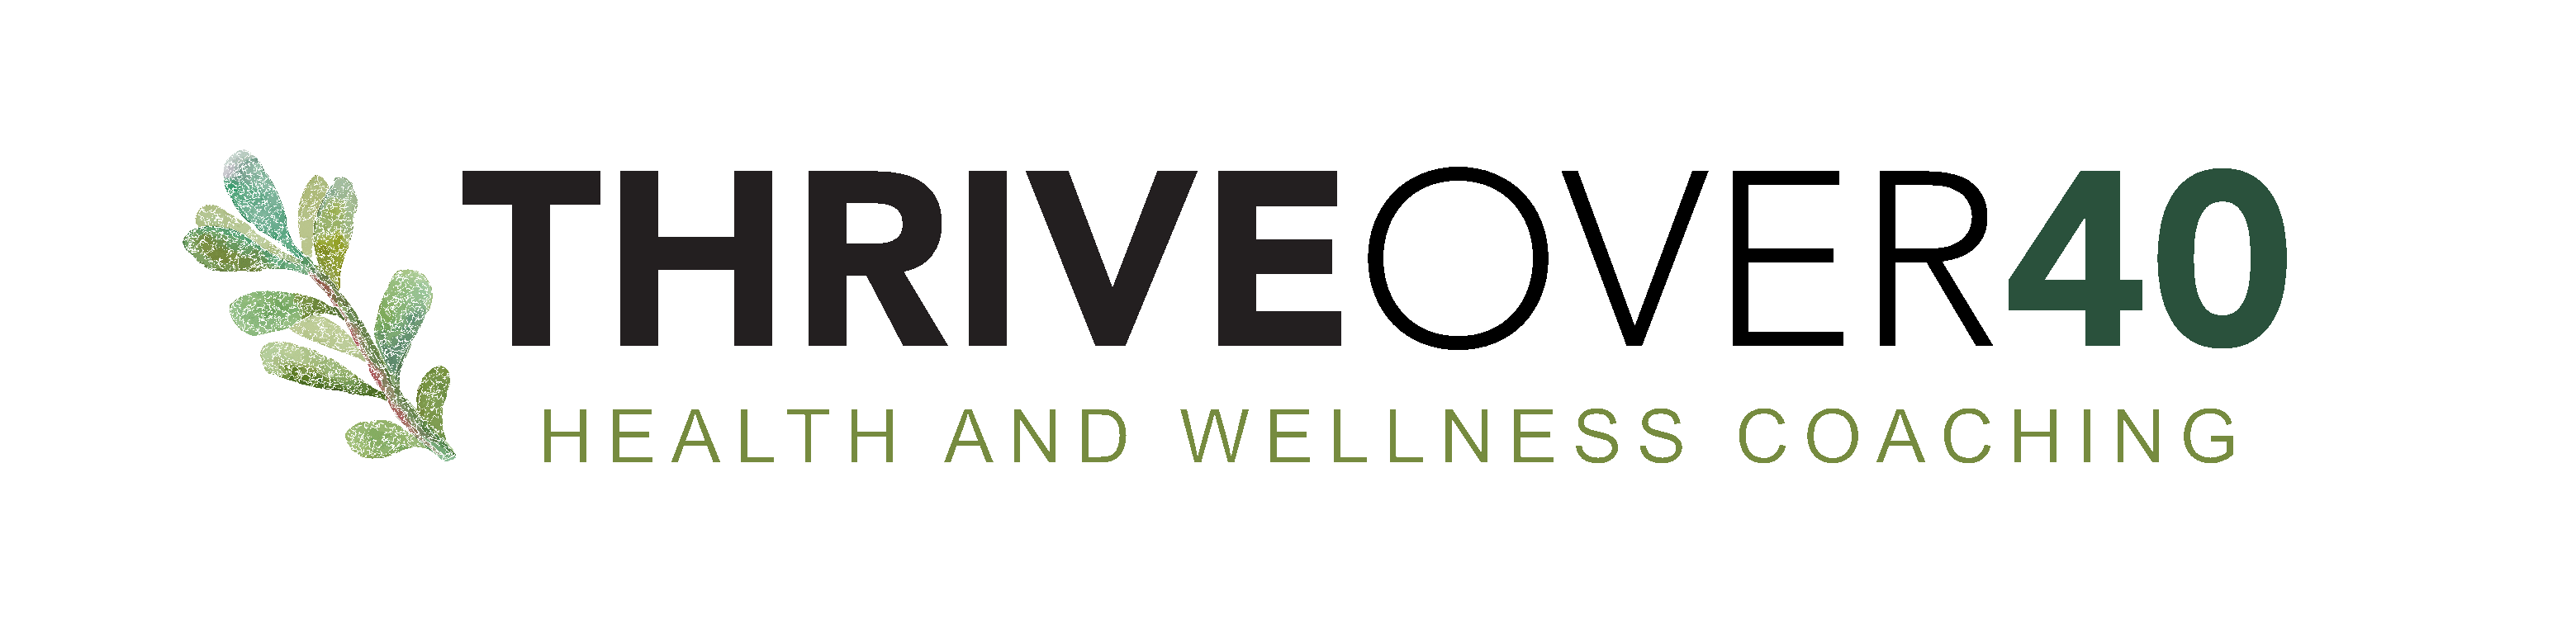 Thrive Over 40 Health & Wellness Coaching